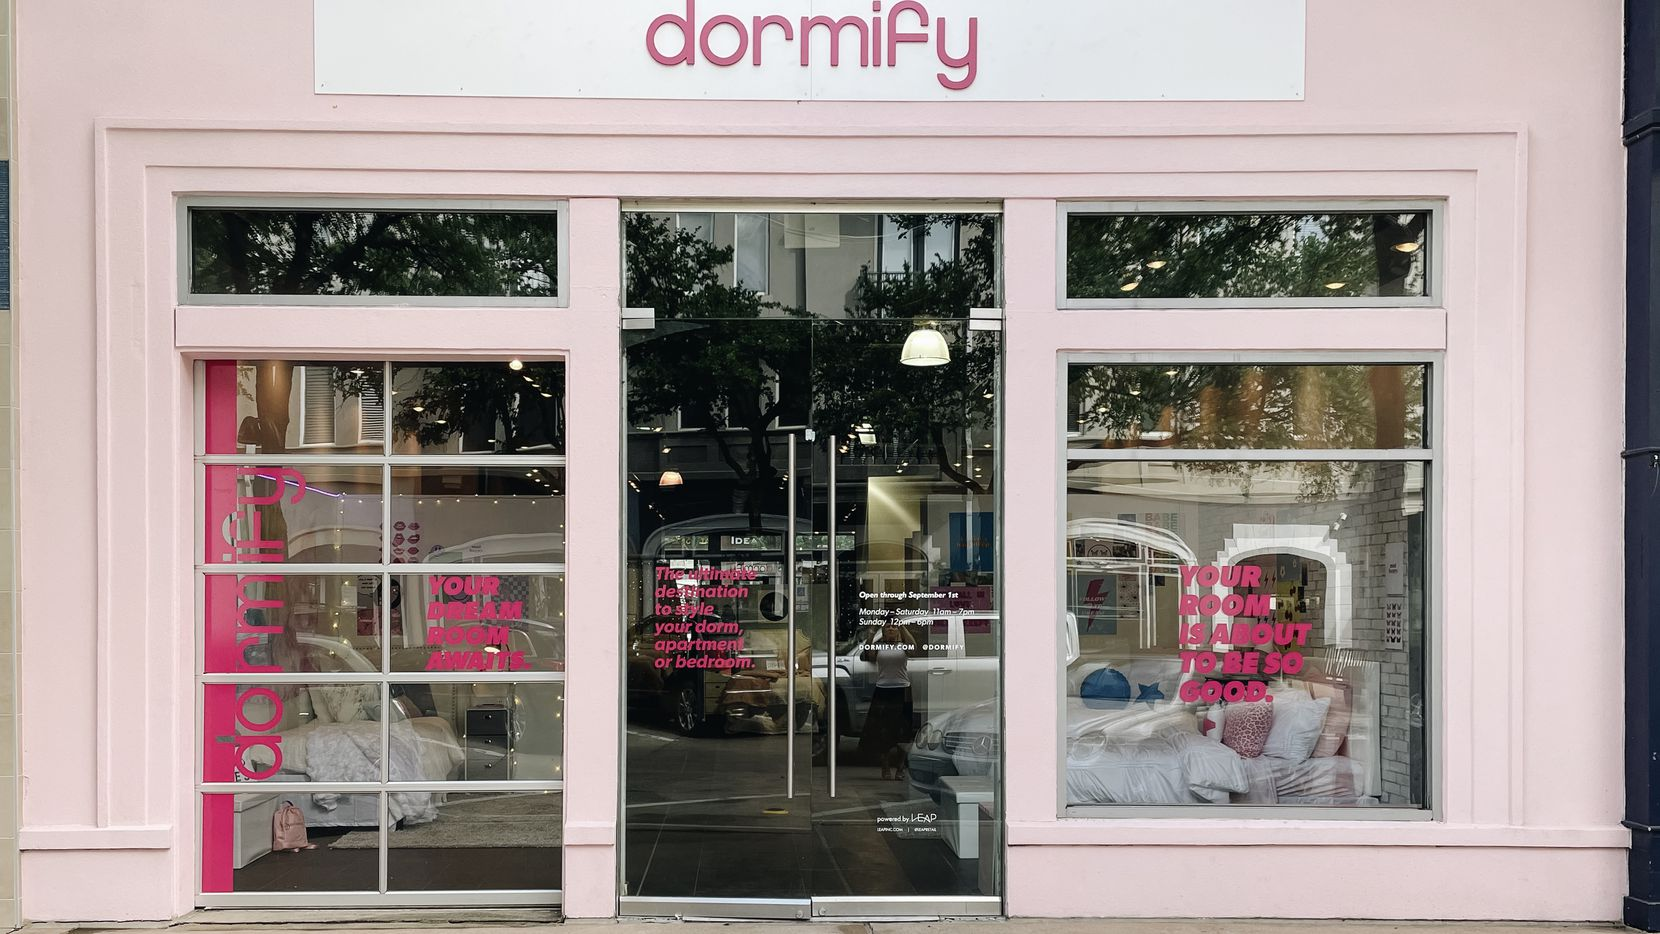 The West Village pop-up is Dormify's first store in Dallas.